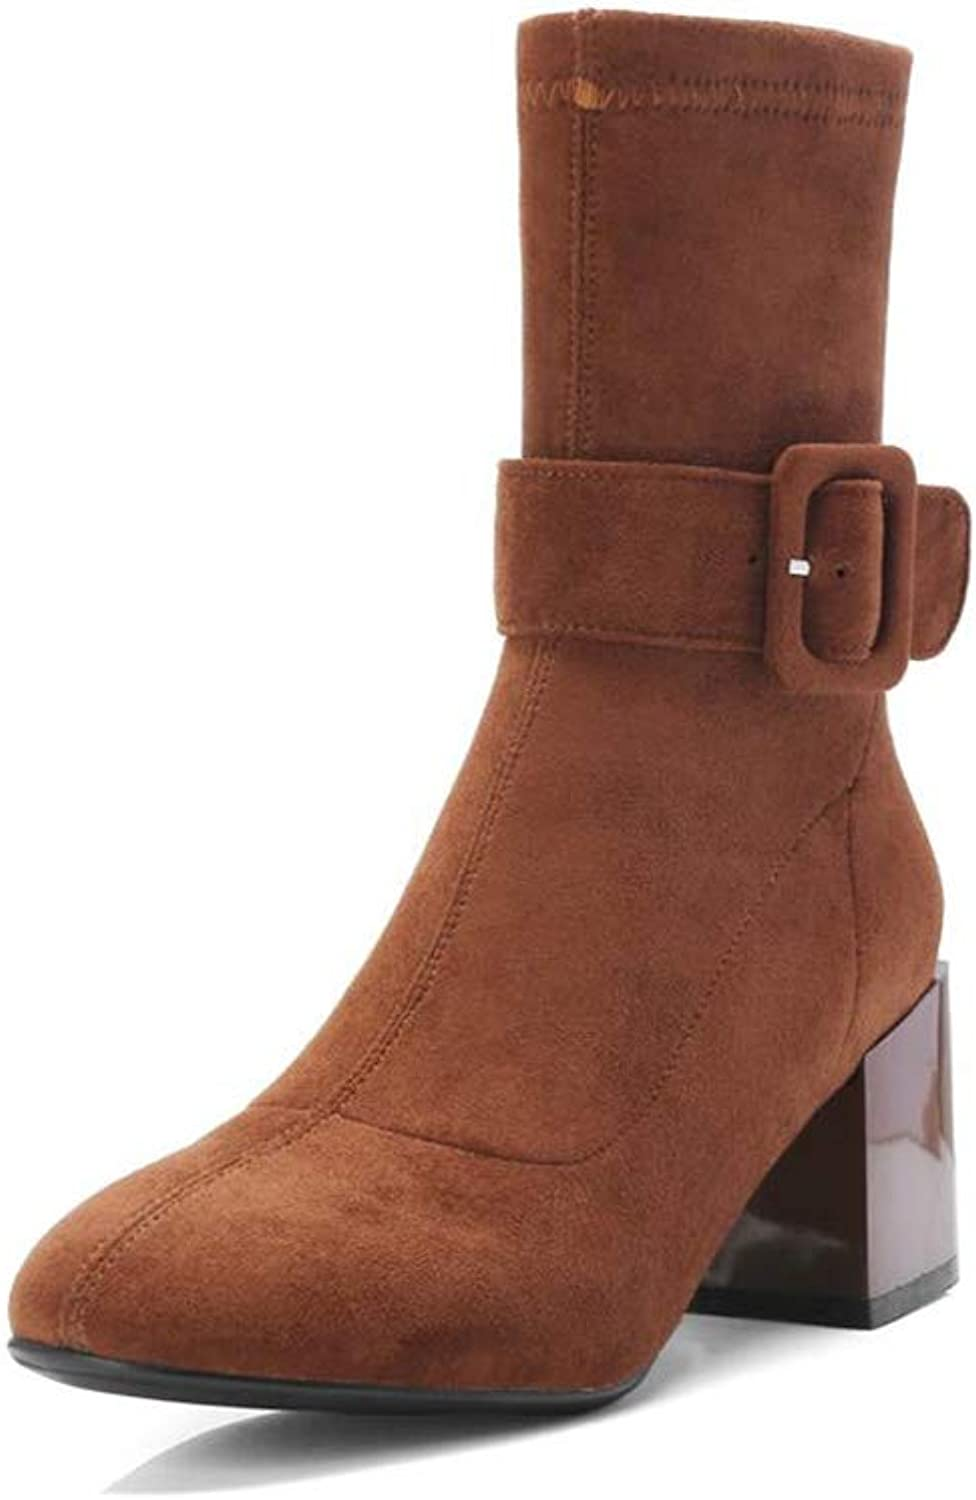 Xiaolin Women shoes Belt Buckle Suede Boots Ankle Boots High Heels Boots Martin Boots Elastic Boots (color   Brown, Size   US5 EU35 UK3 CN34)